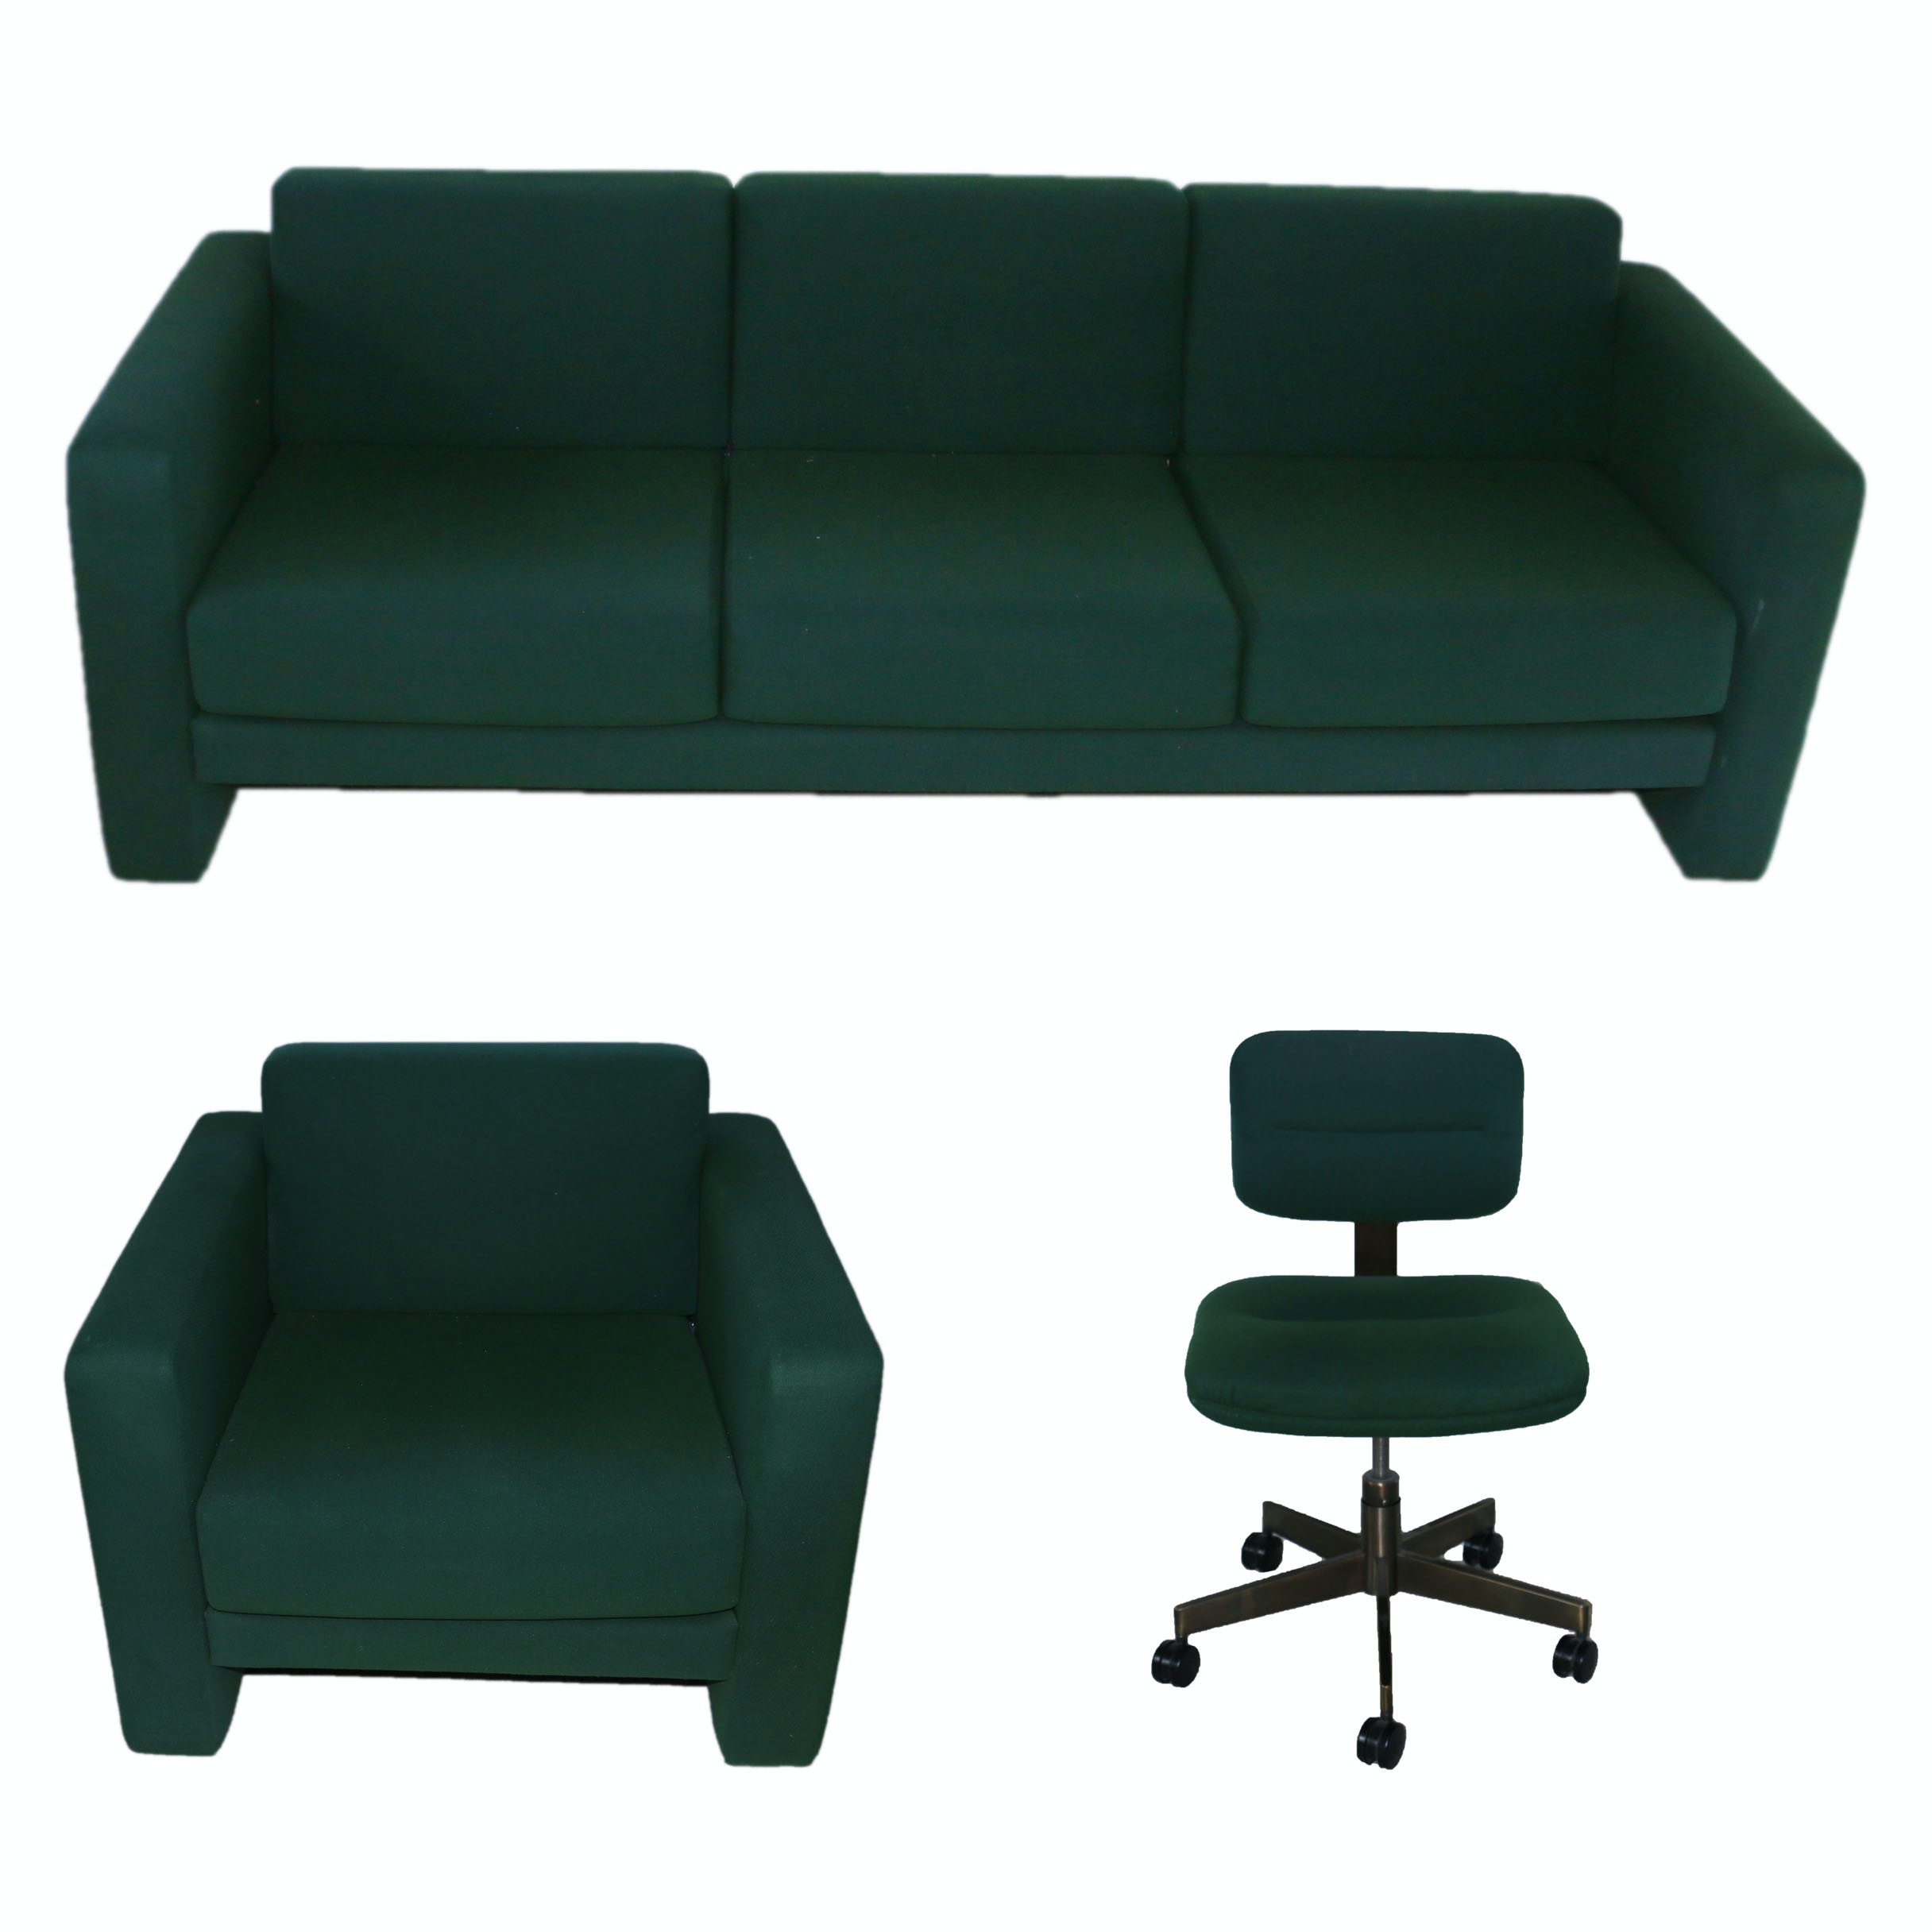 Green Upholstered Sofa, Armchair, and Office Chair by Interiors International